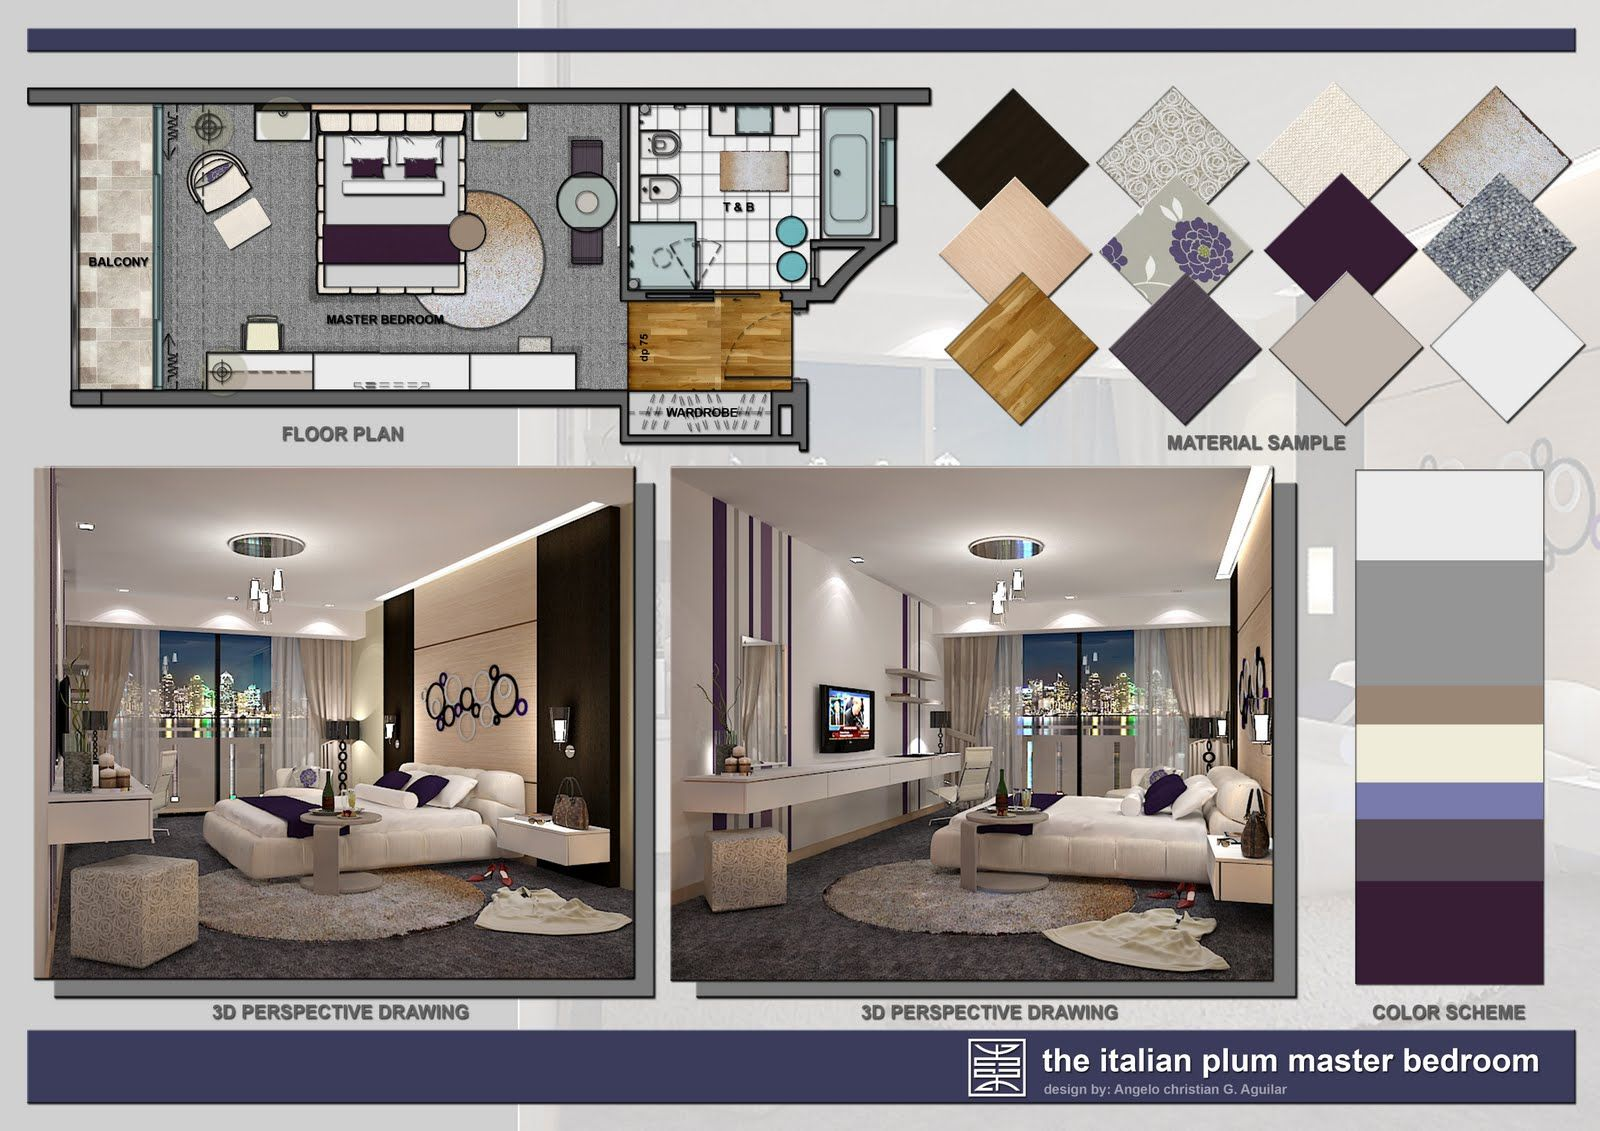 Ordinary Design My Room Online Part 2 Interior Design Presentation Boards